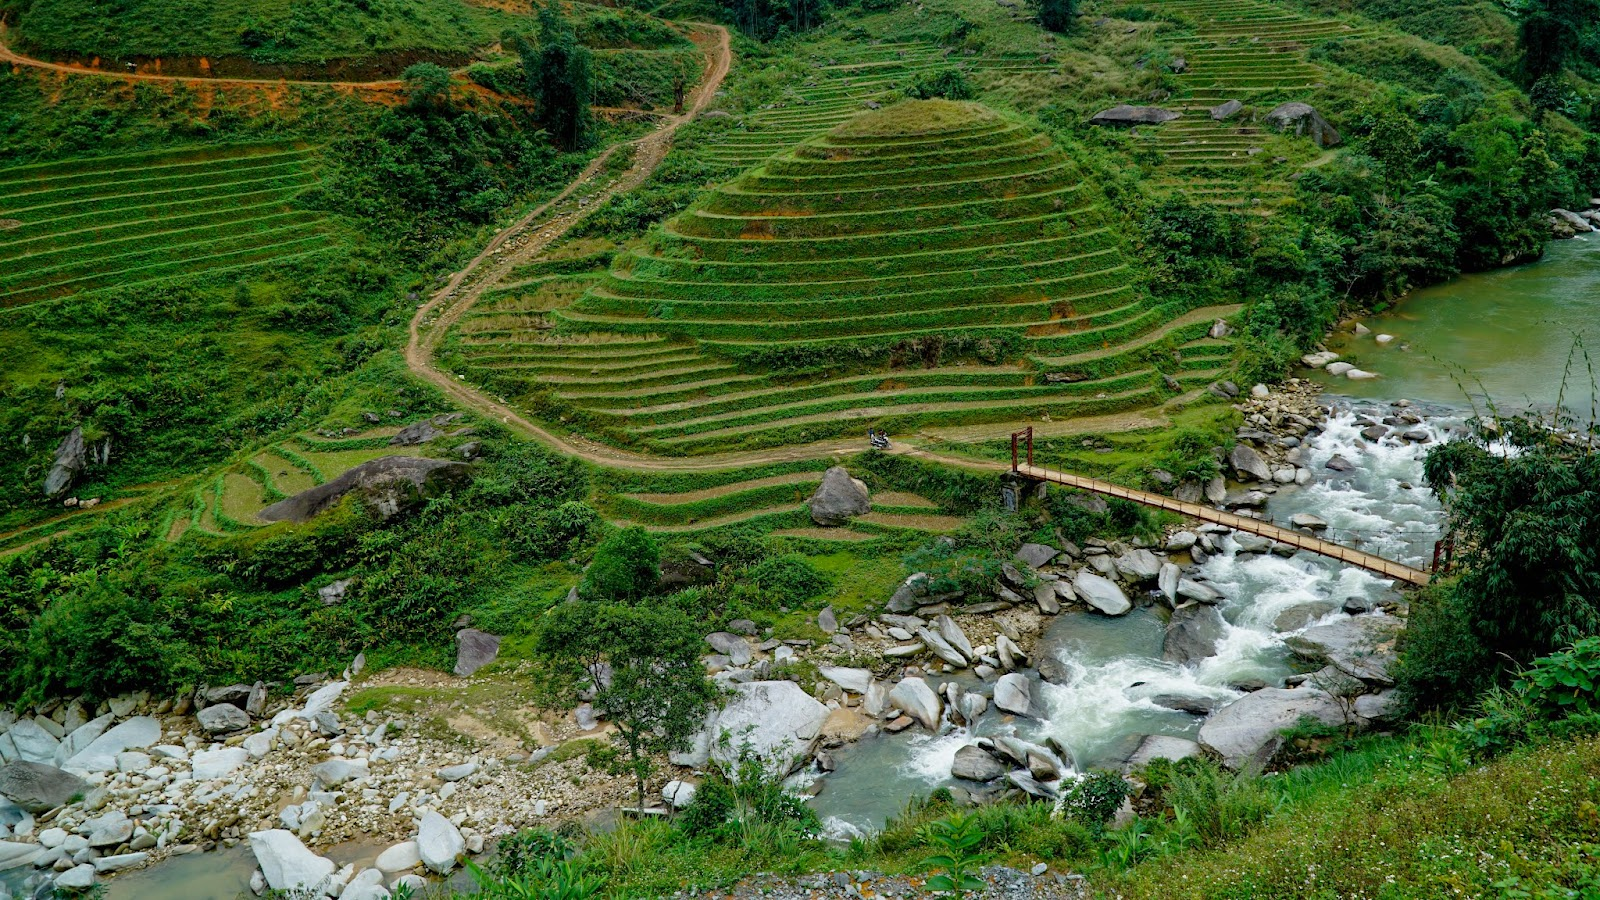 View of rice terraces on the way to Trung Chai